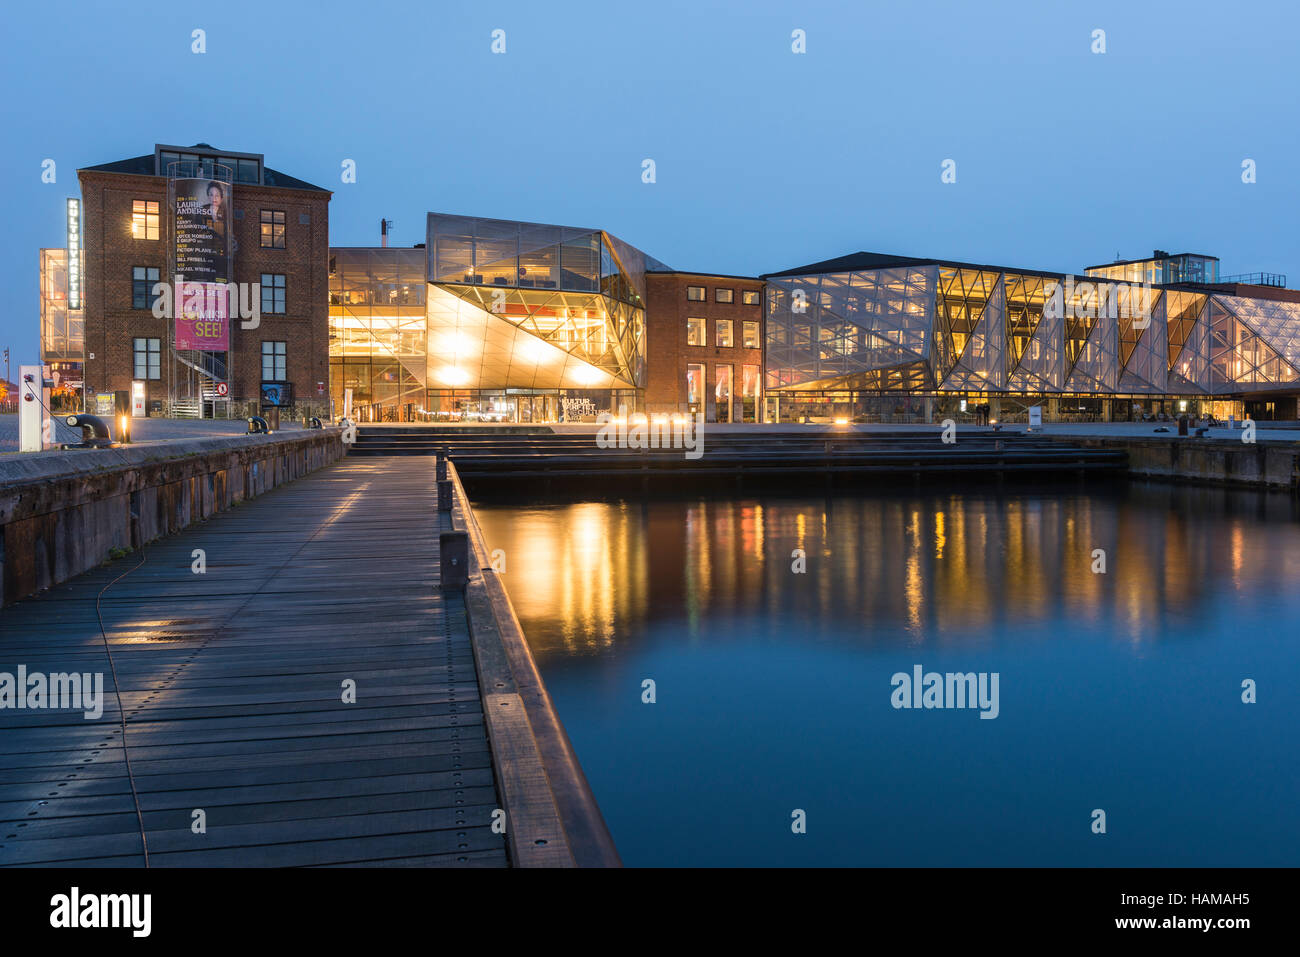 View at dusk of The Culture Yard, a modern cultural center with library, designed by AART architects in Elsinore - Stock Image